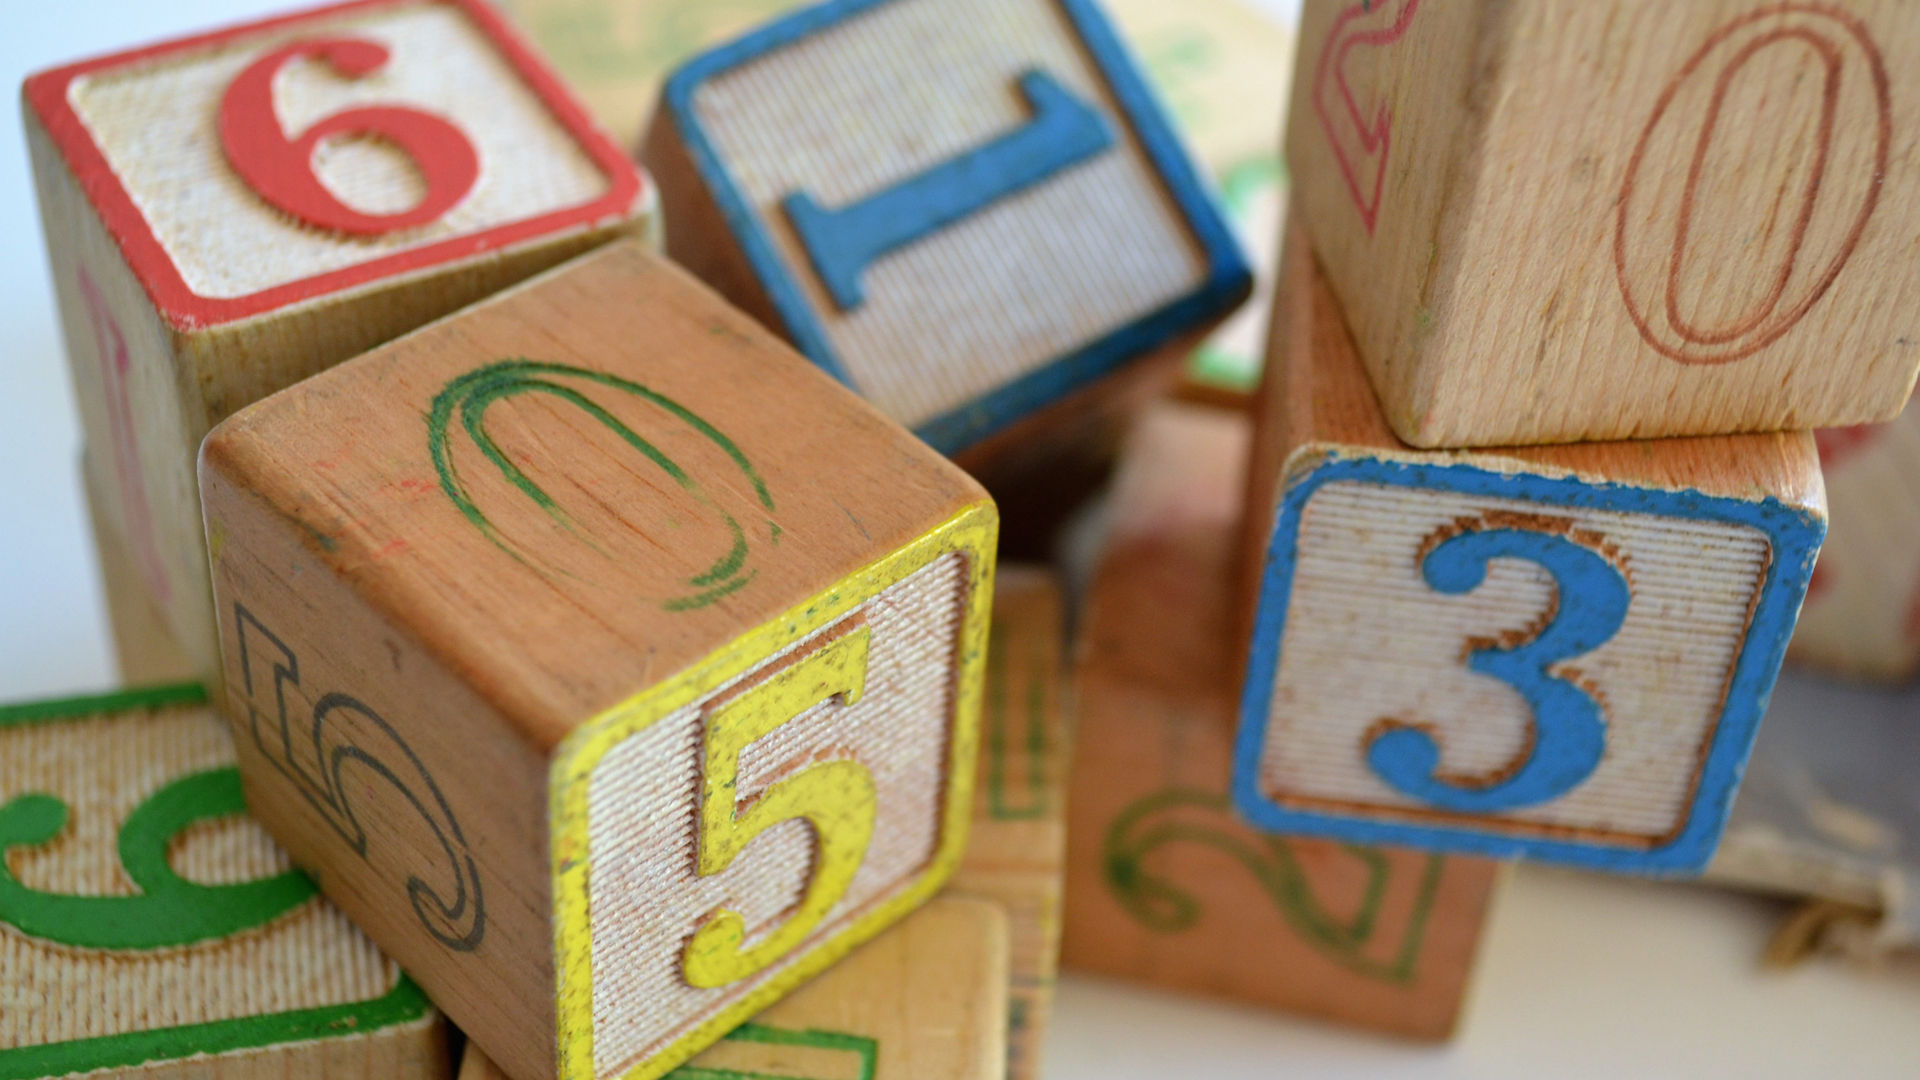 Looking to promote creativity? Here are 7 of the best open-ended toys to encourage imaginative, creative play